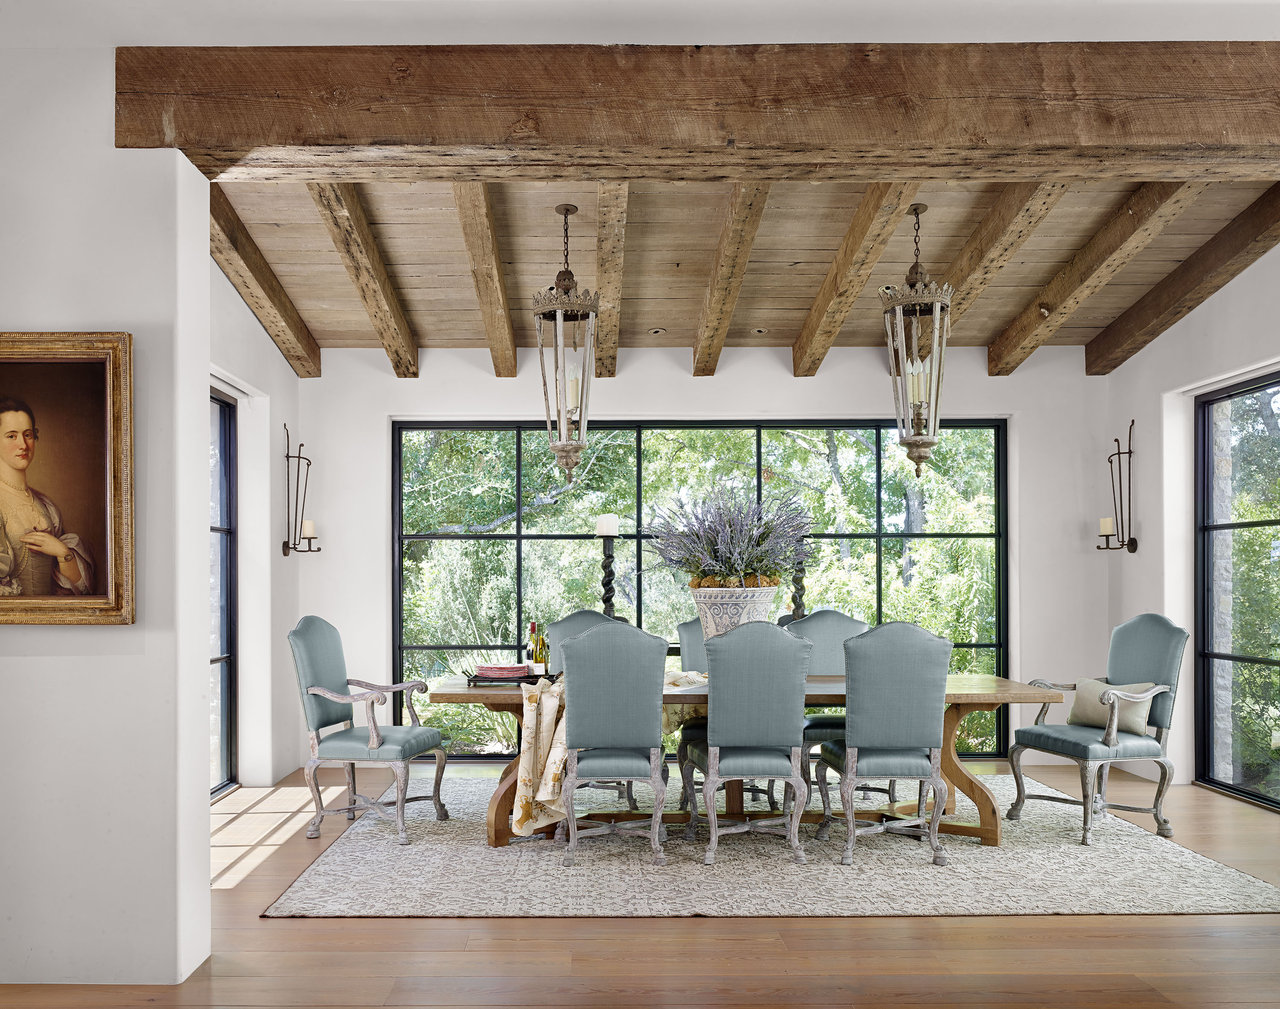 Painted Wood Ceilings Trending Wood Ceiling Treatments Beams Planking